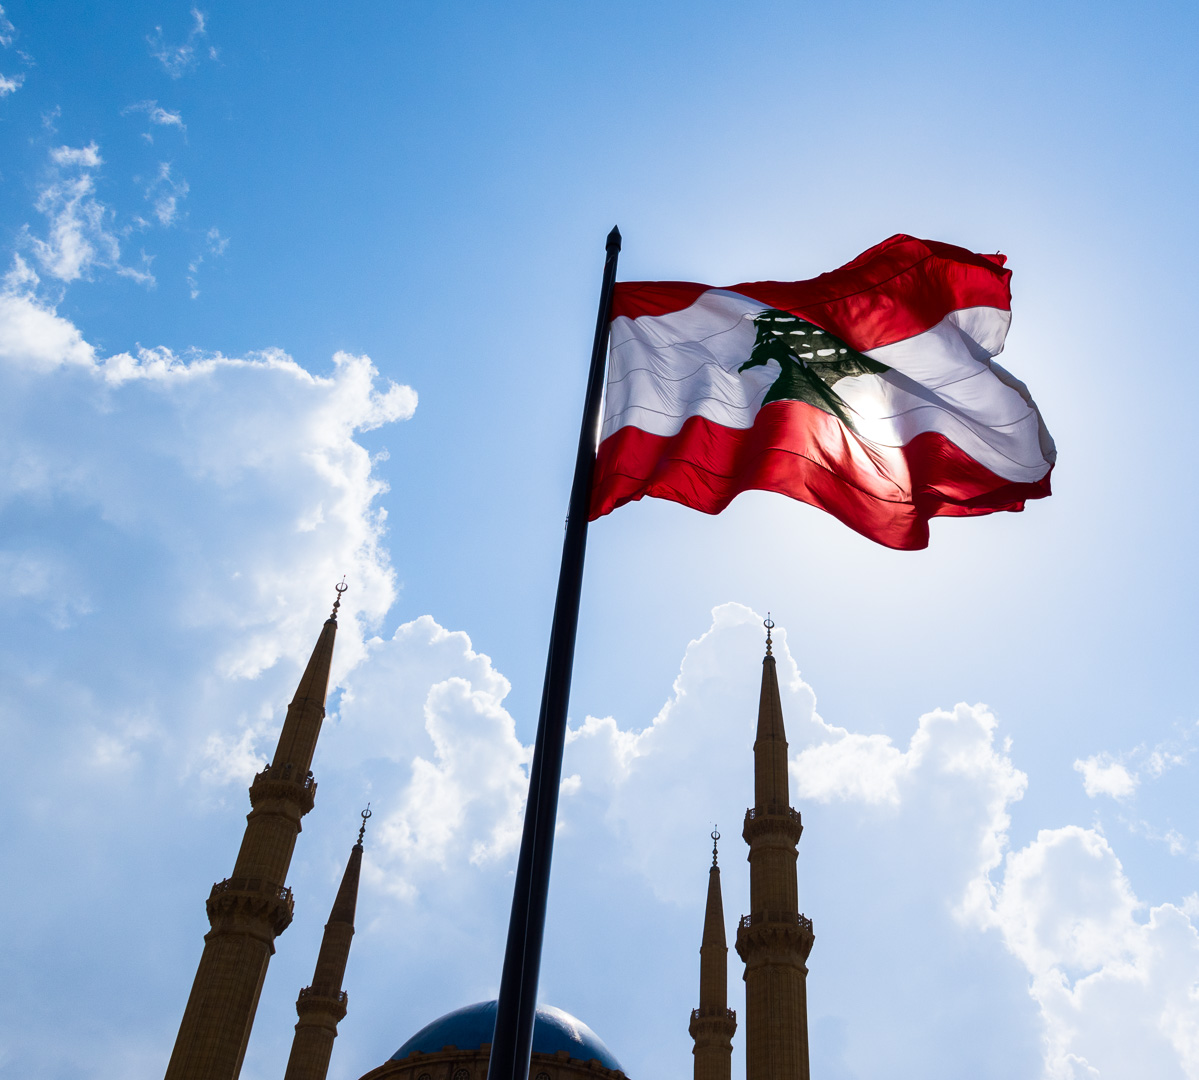 A Lebanese flag and the minarets of the blue mosque against the blue sky in Beirut, Lebanon